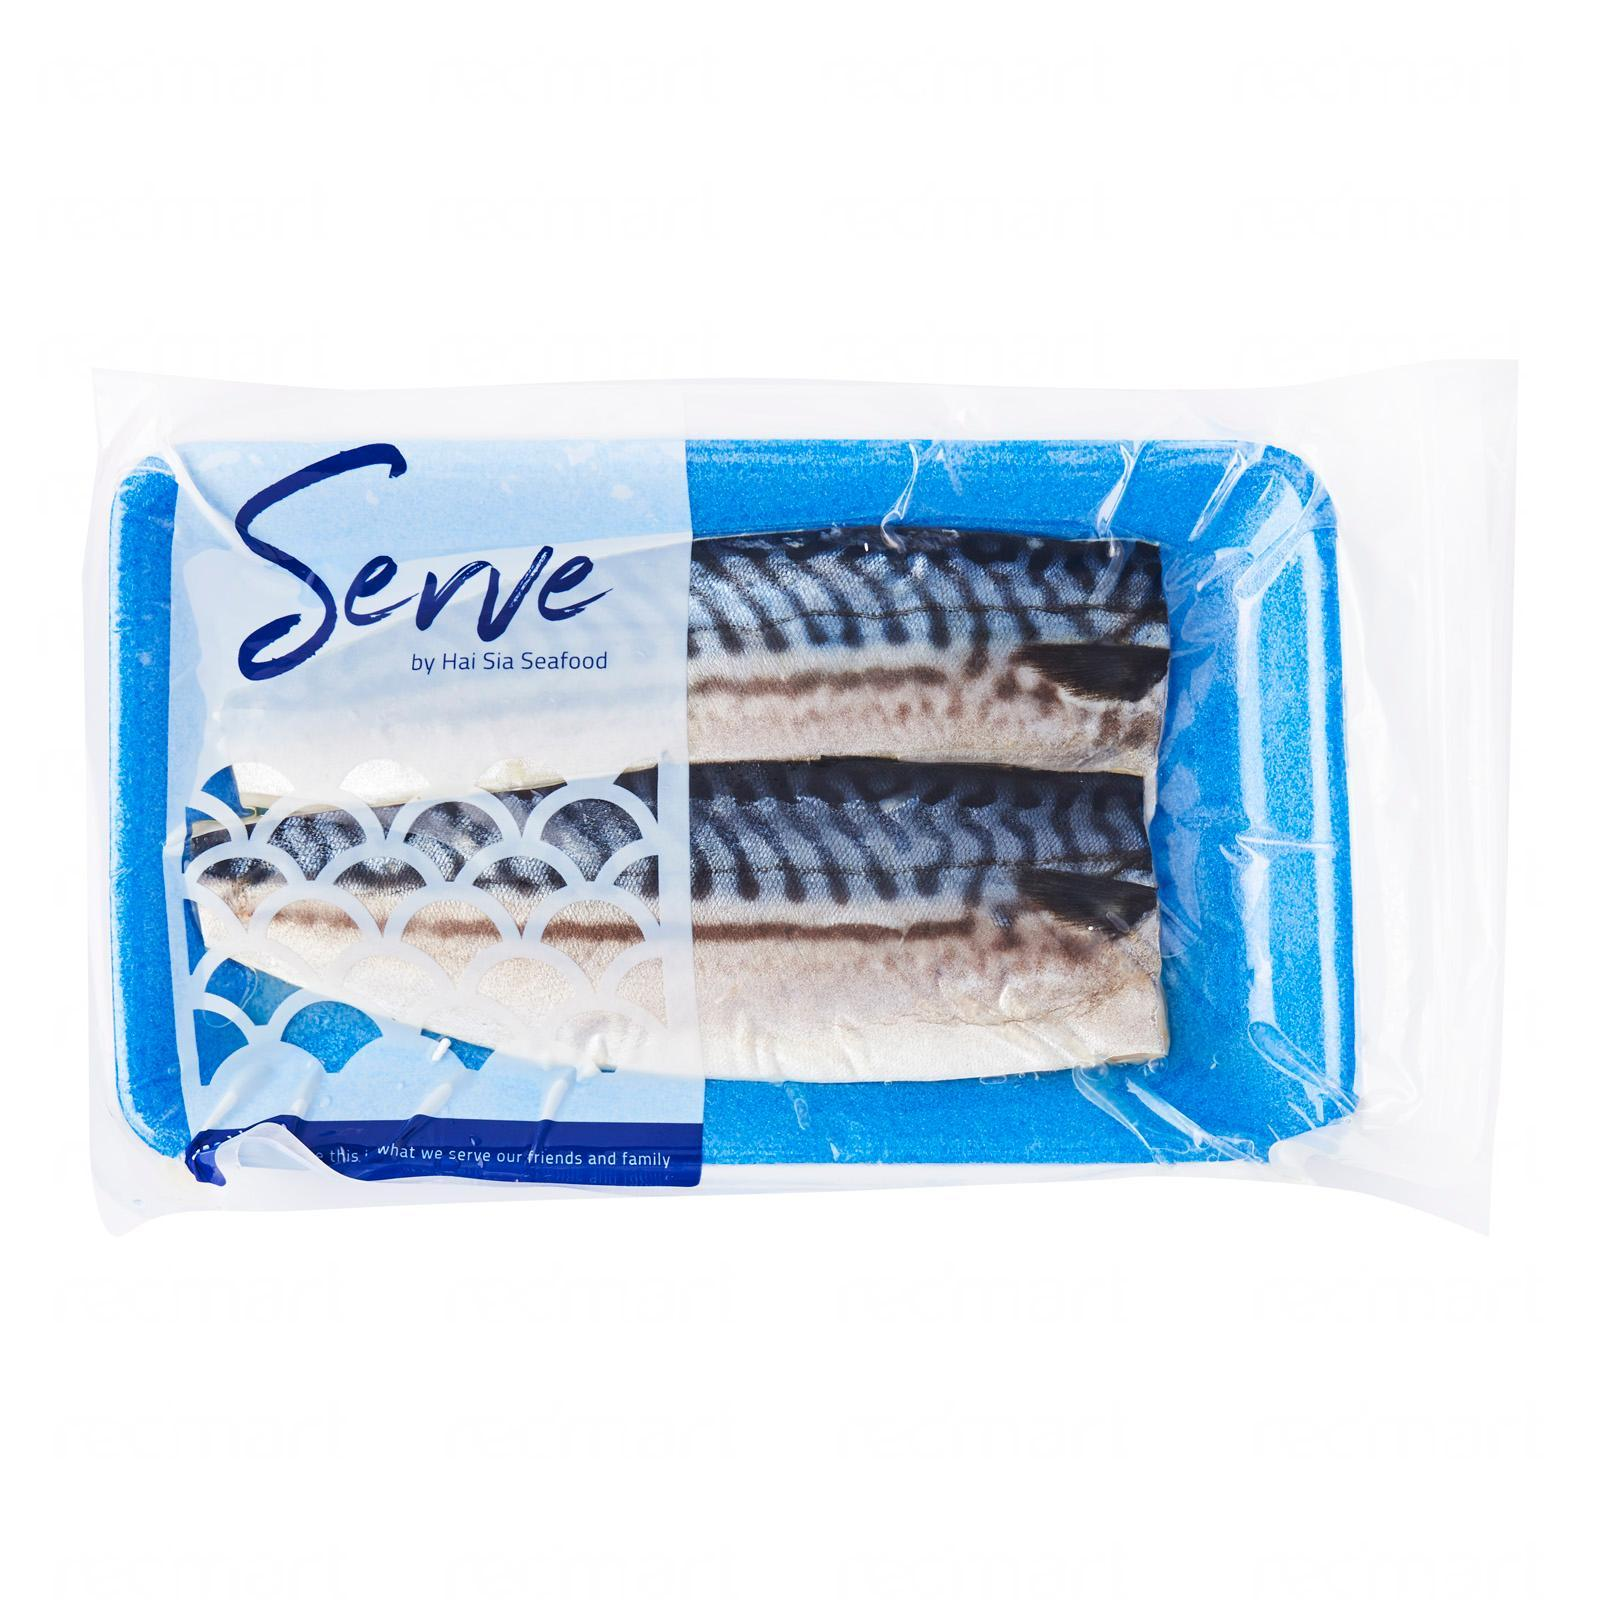 Serve By Hai Sia Seafood Norwegian Saba Fillets - Frozen By Redmart.